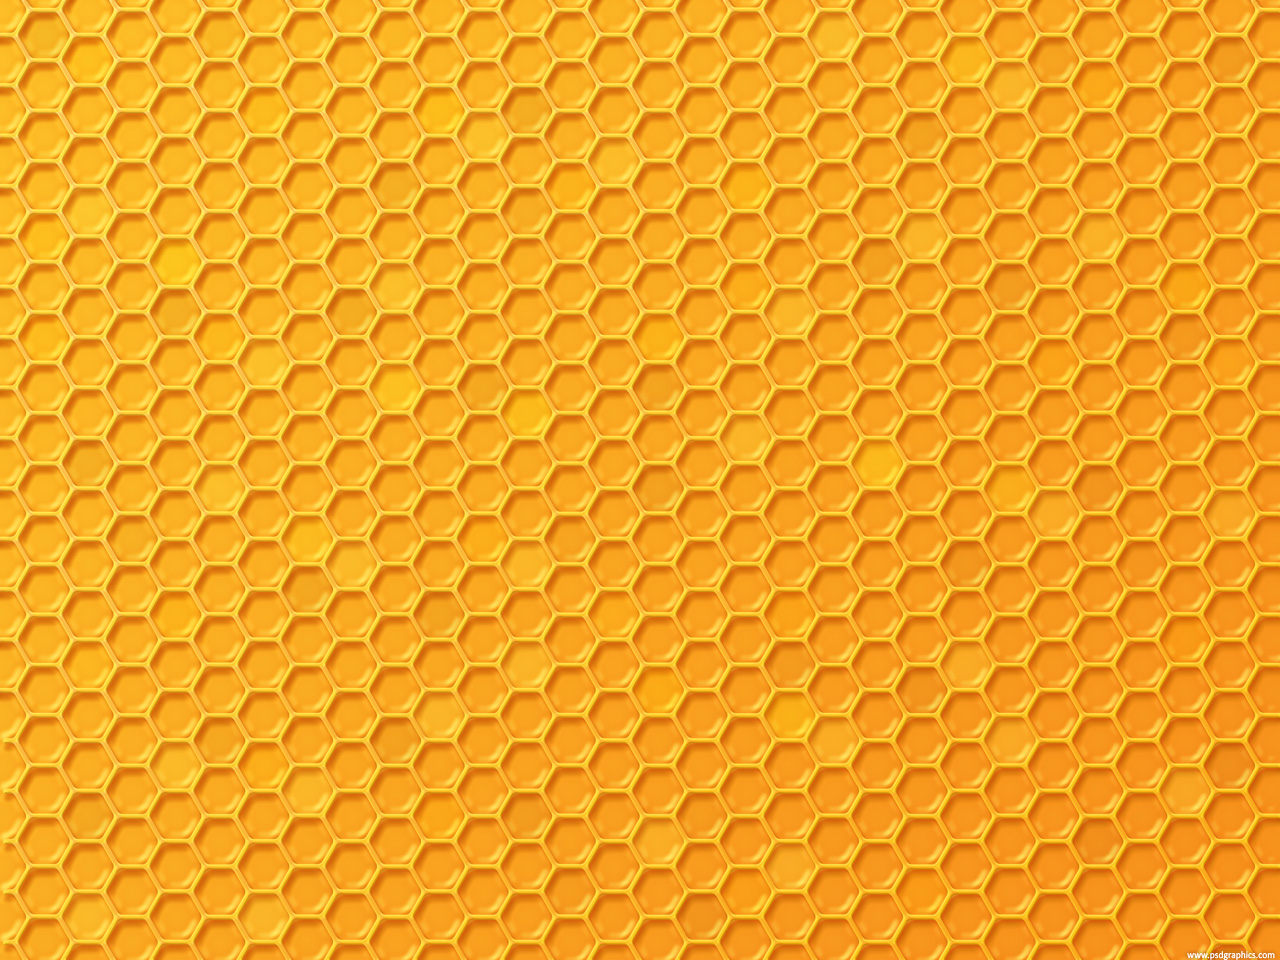 Yellow honey background with hexagonal pattern vector free download - Honeycomb Texture